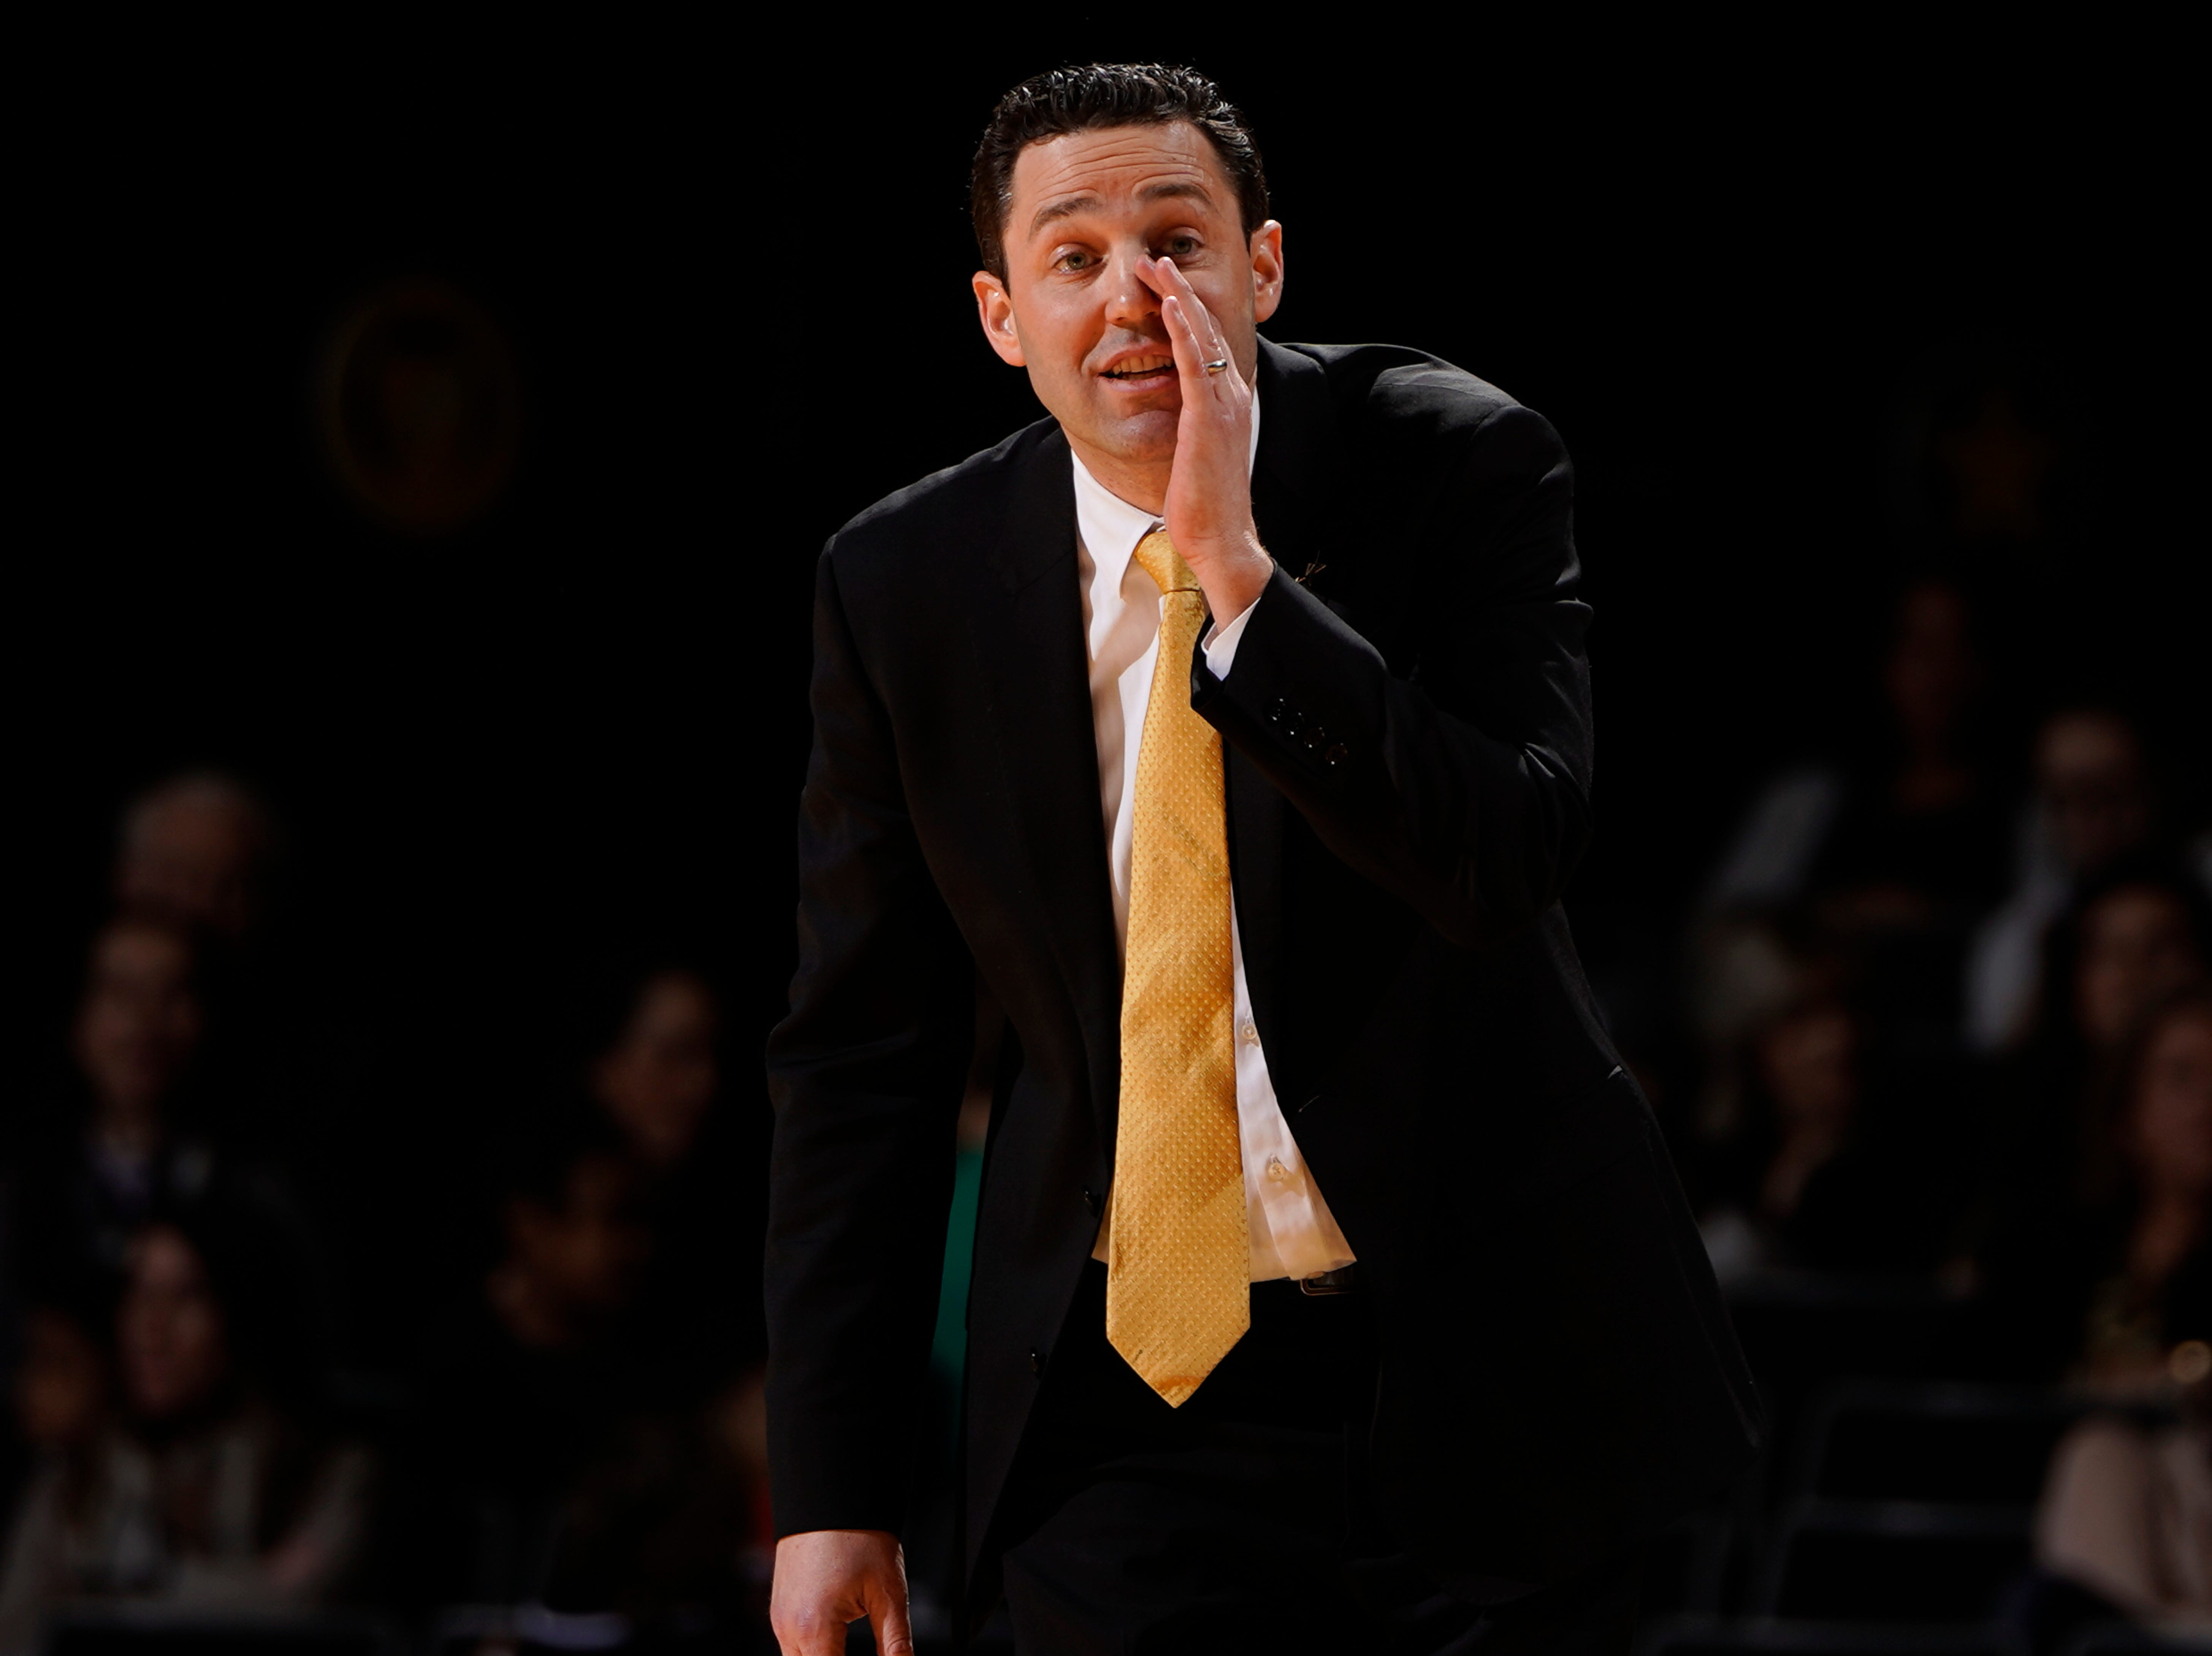 Vanderbilt head coach Bryce Drew yells at his team during the first half of their game against Arkansas at Memorial Gym Wednesday, March 6, 2019 in Nashville, Tenn.